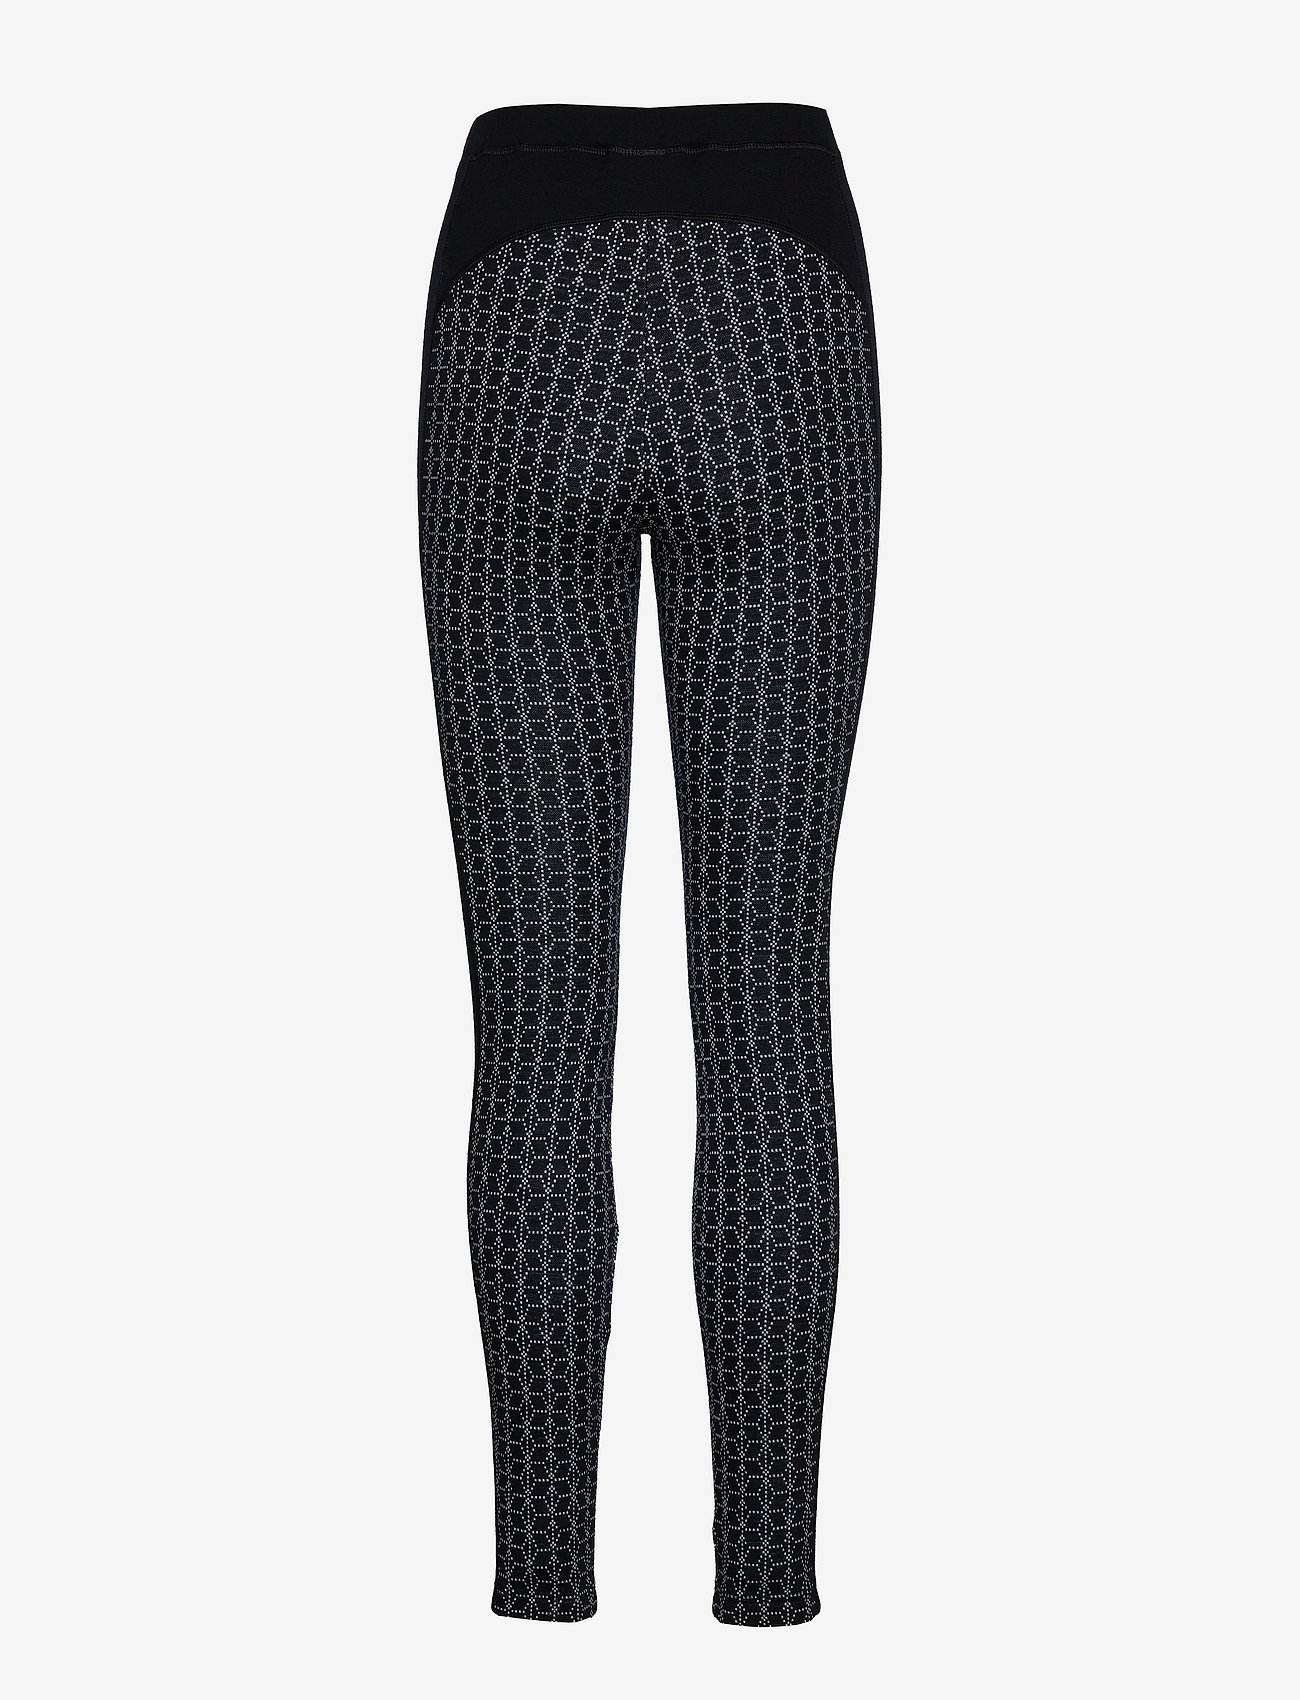 Stjerne Fem Leggings  - Dale of Norway